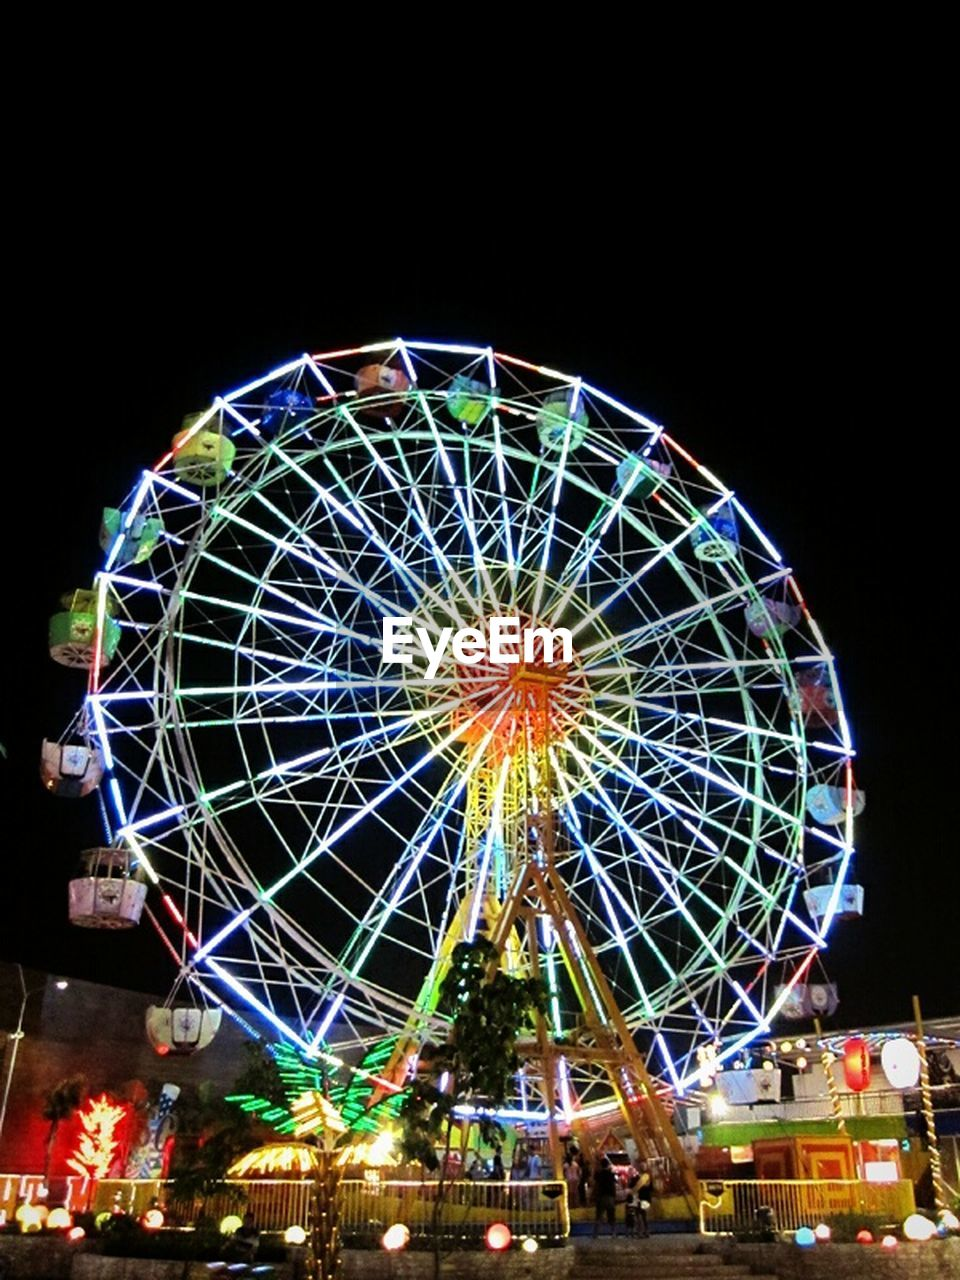 amusement park, arts culture and entertainment, ferris wheel, amusement park ride, illuminated, night, multi colored, traveling carnival, leisure activity, fun, low angle view, outdoors, sky, black background, no people, carousel